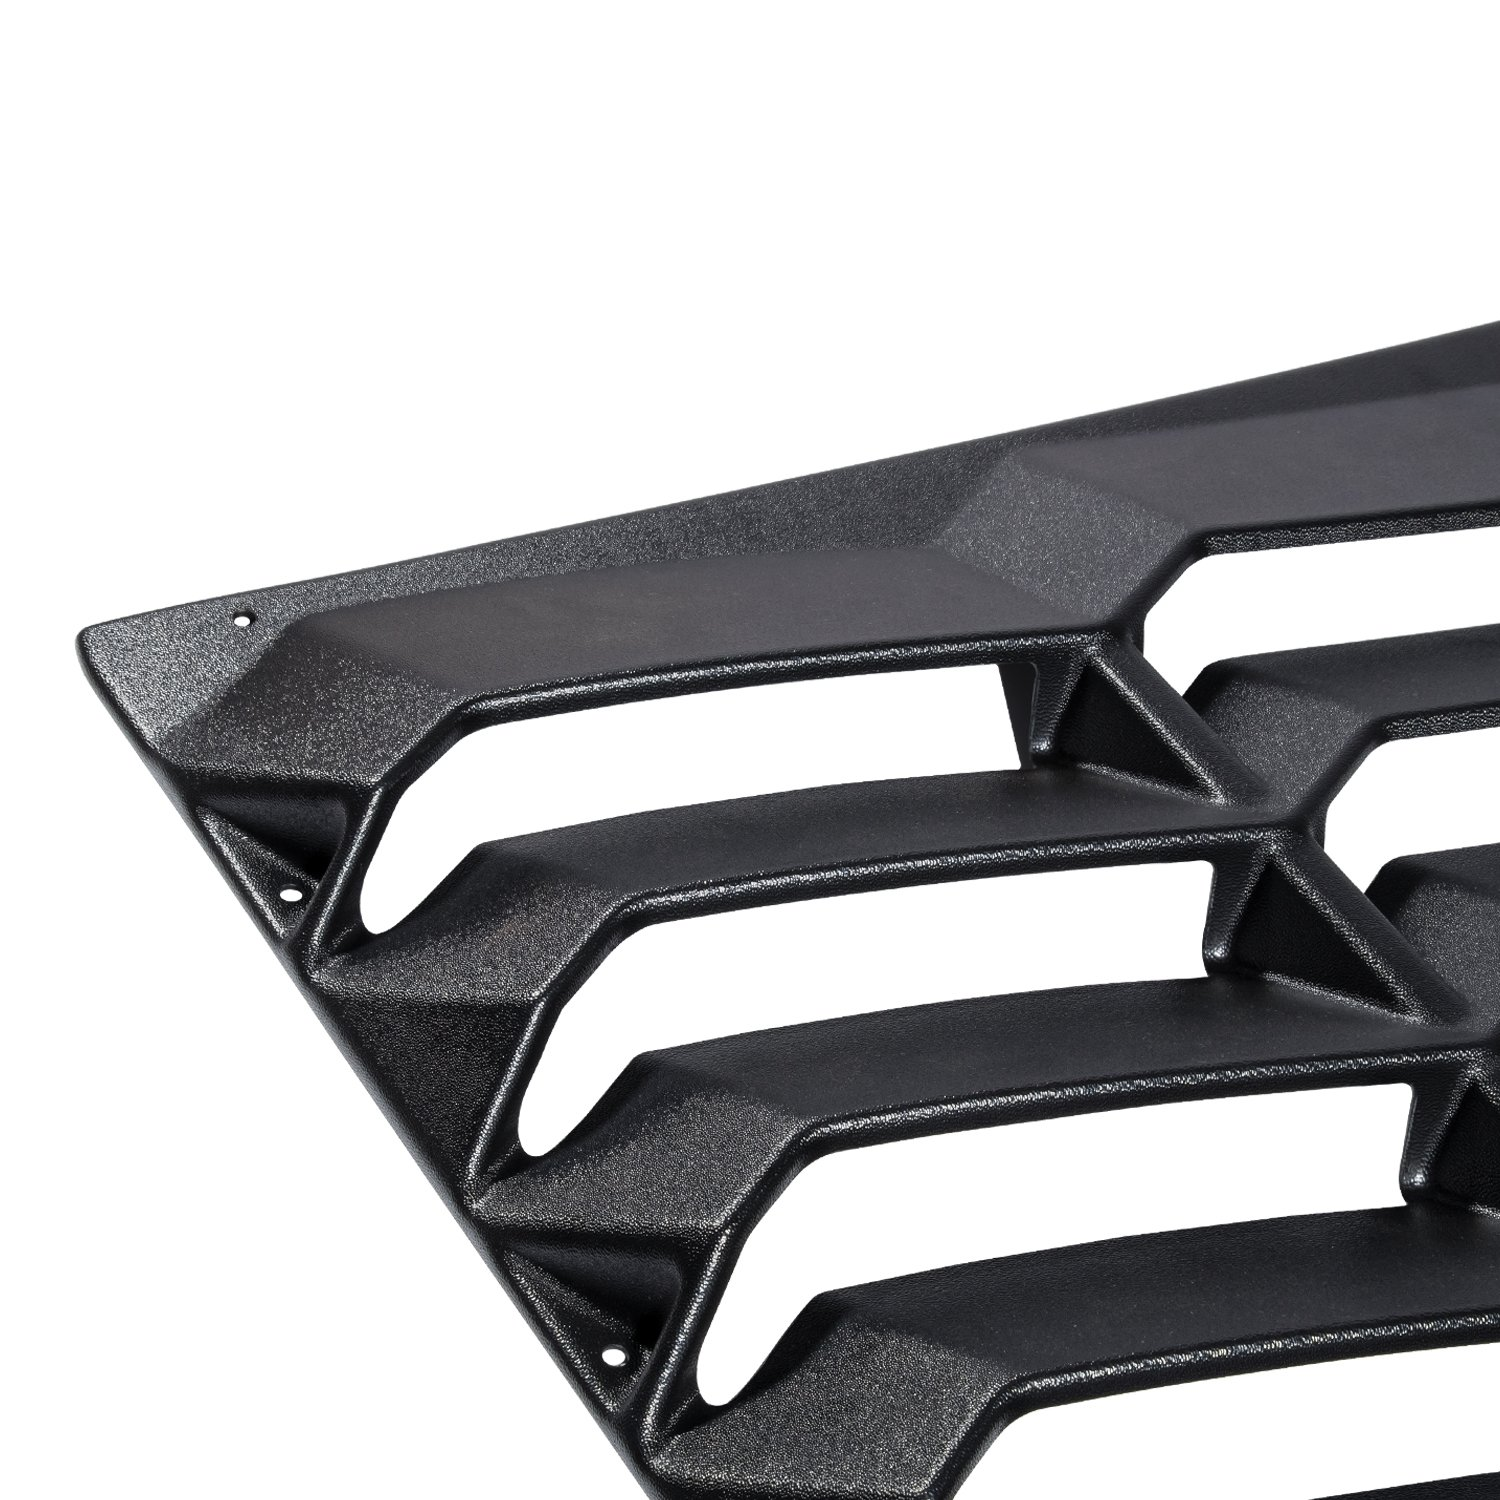 2017 E-cowlboy Window Louvers Fits 2016-2018 Chevy Camaro ABS Plastic Black Rear Window Visor Guards By IKON MOTORSPORTS